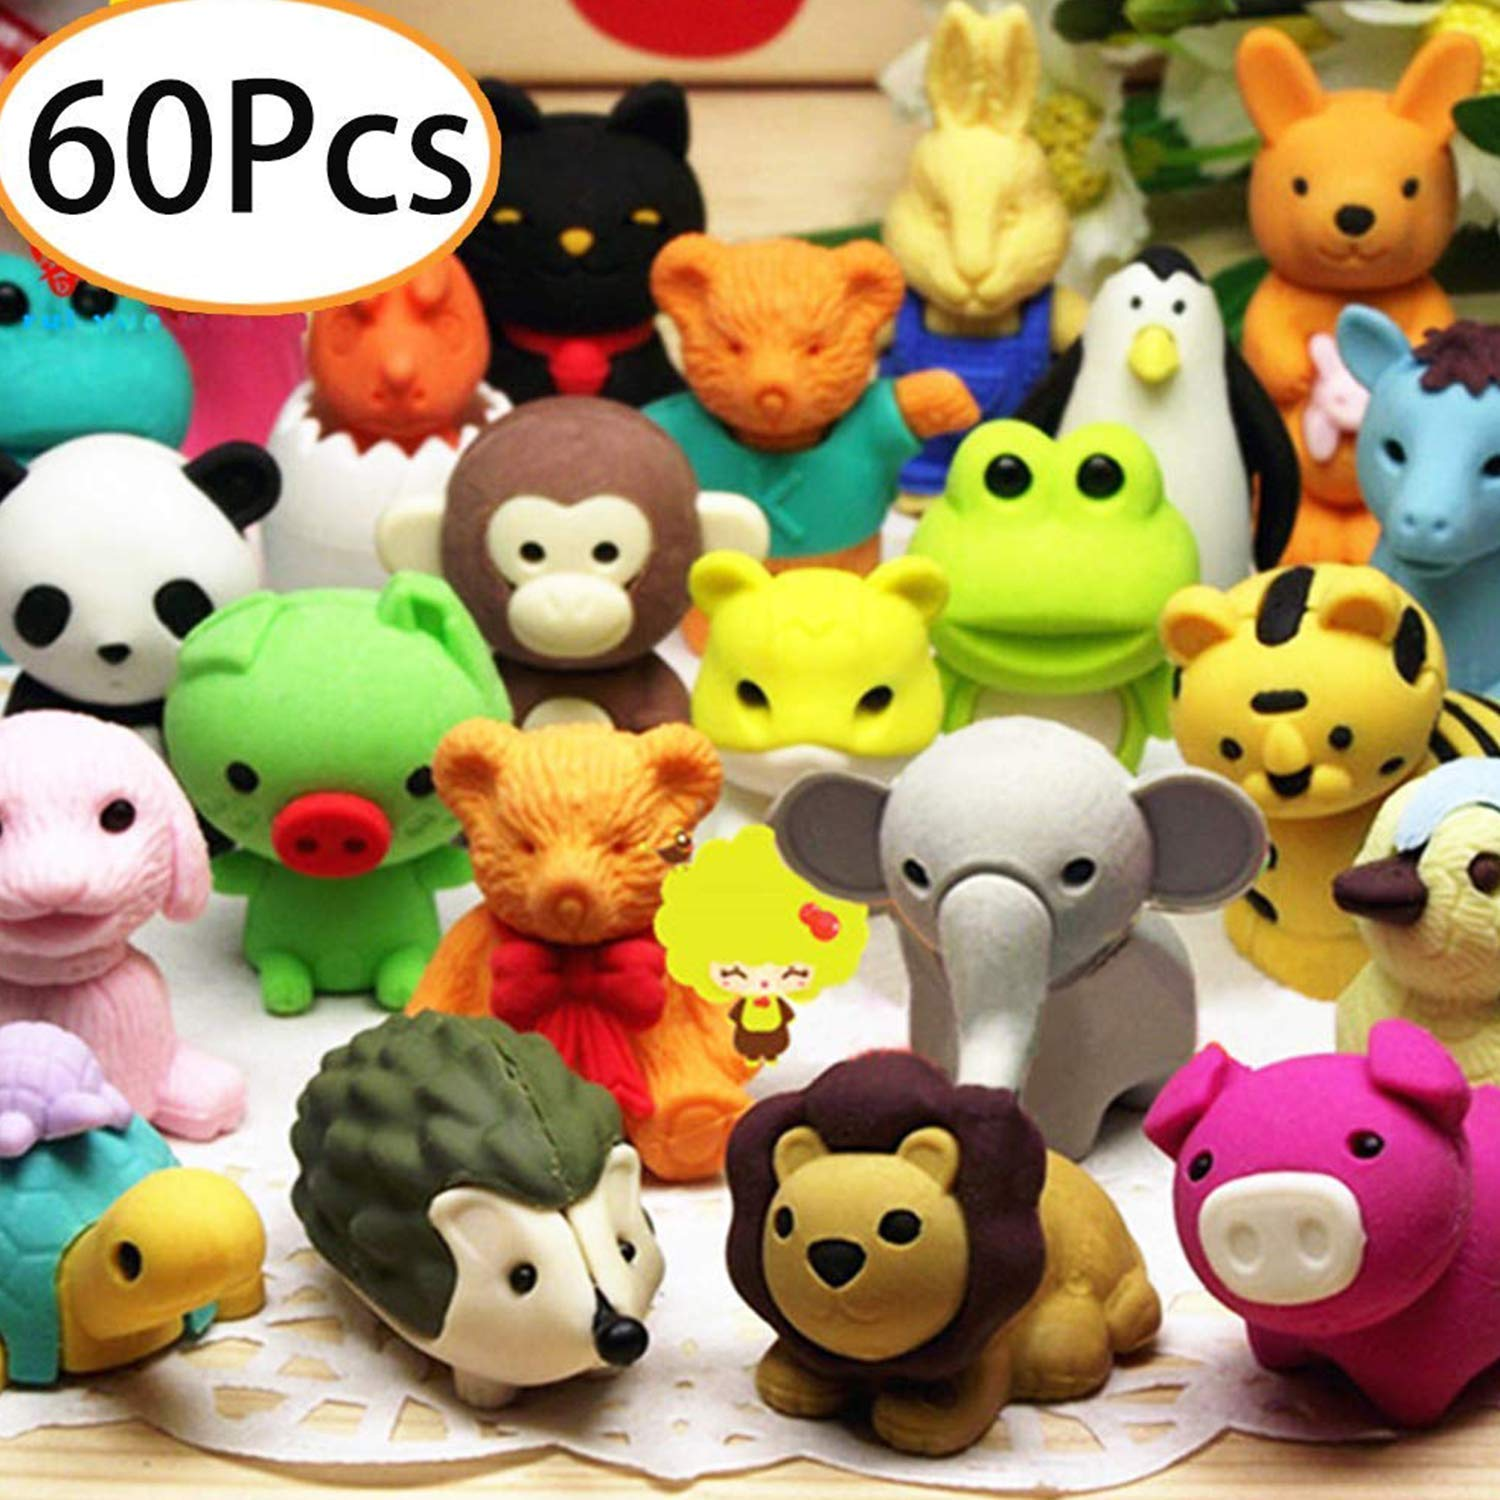 Axe Sickle 60 pcs Mini Animals Erasers, Non-Toxic Novelty Erasers Toys Best for Kids Fun Games and Collection. by Axe Sickle